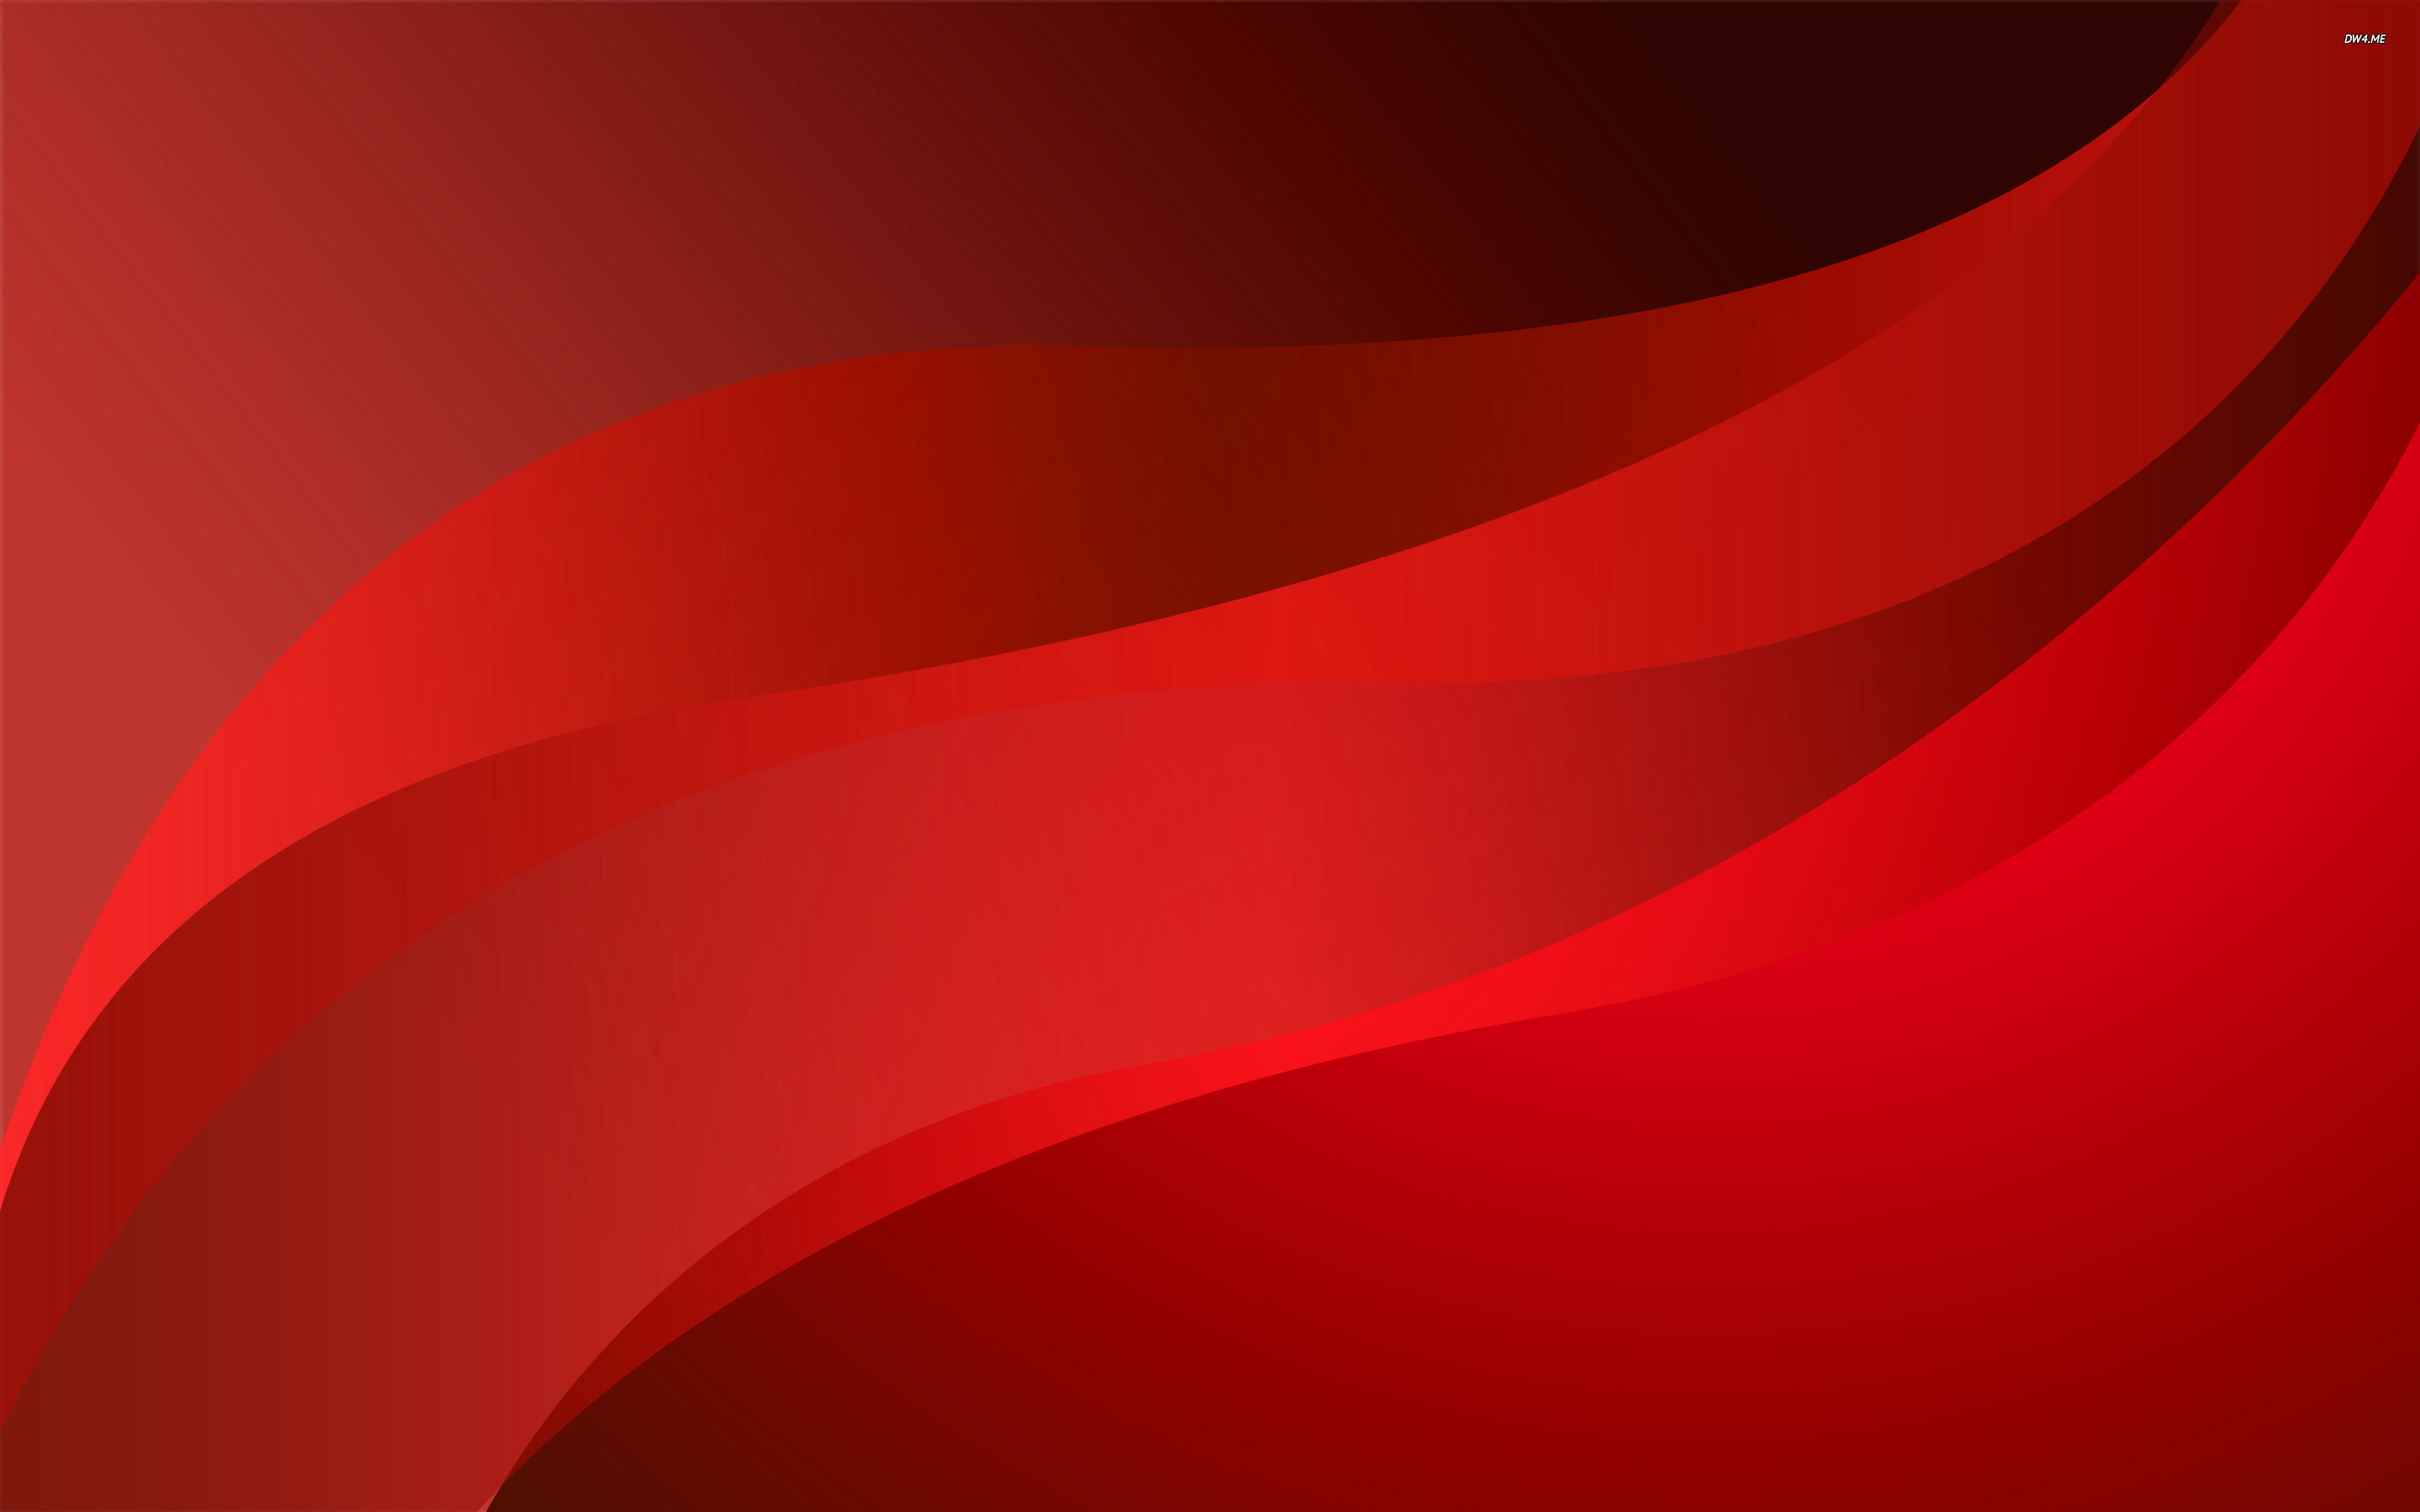 Cool red and black themes 30 hd wallpaper - Cool red and black wallpapers ...